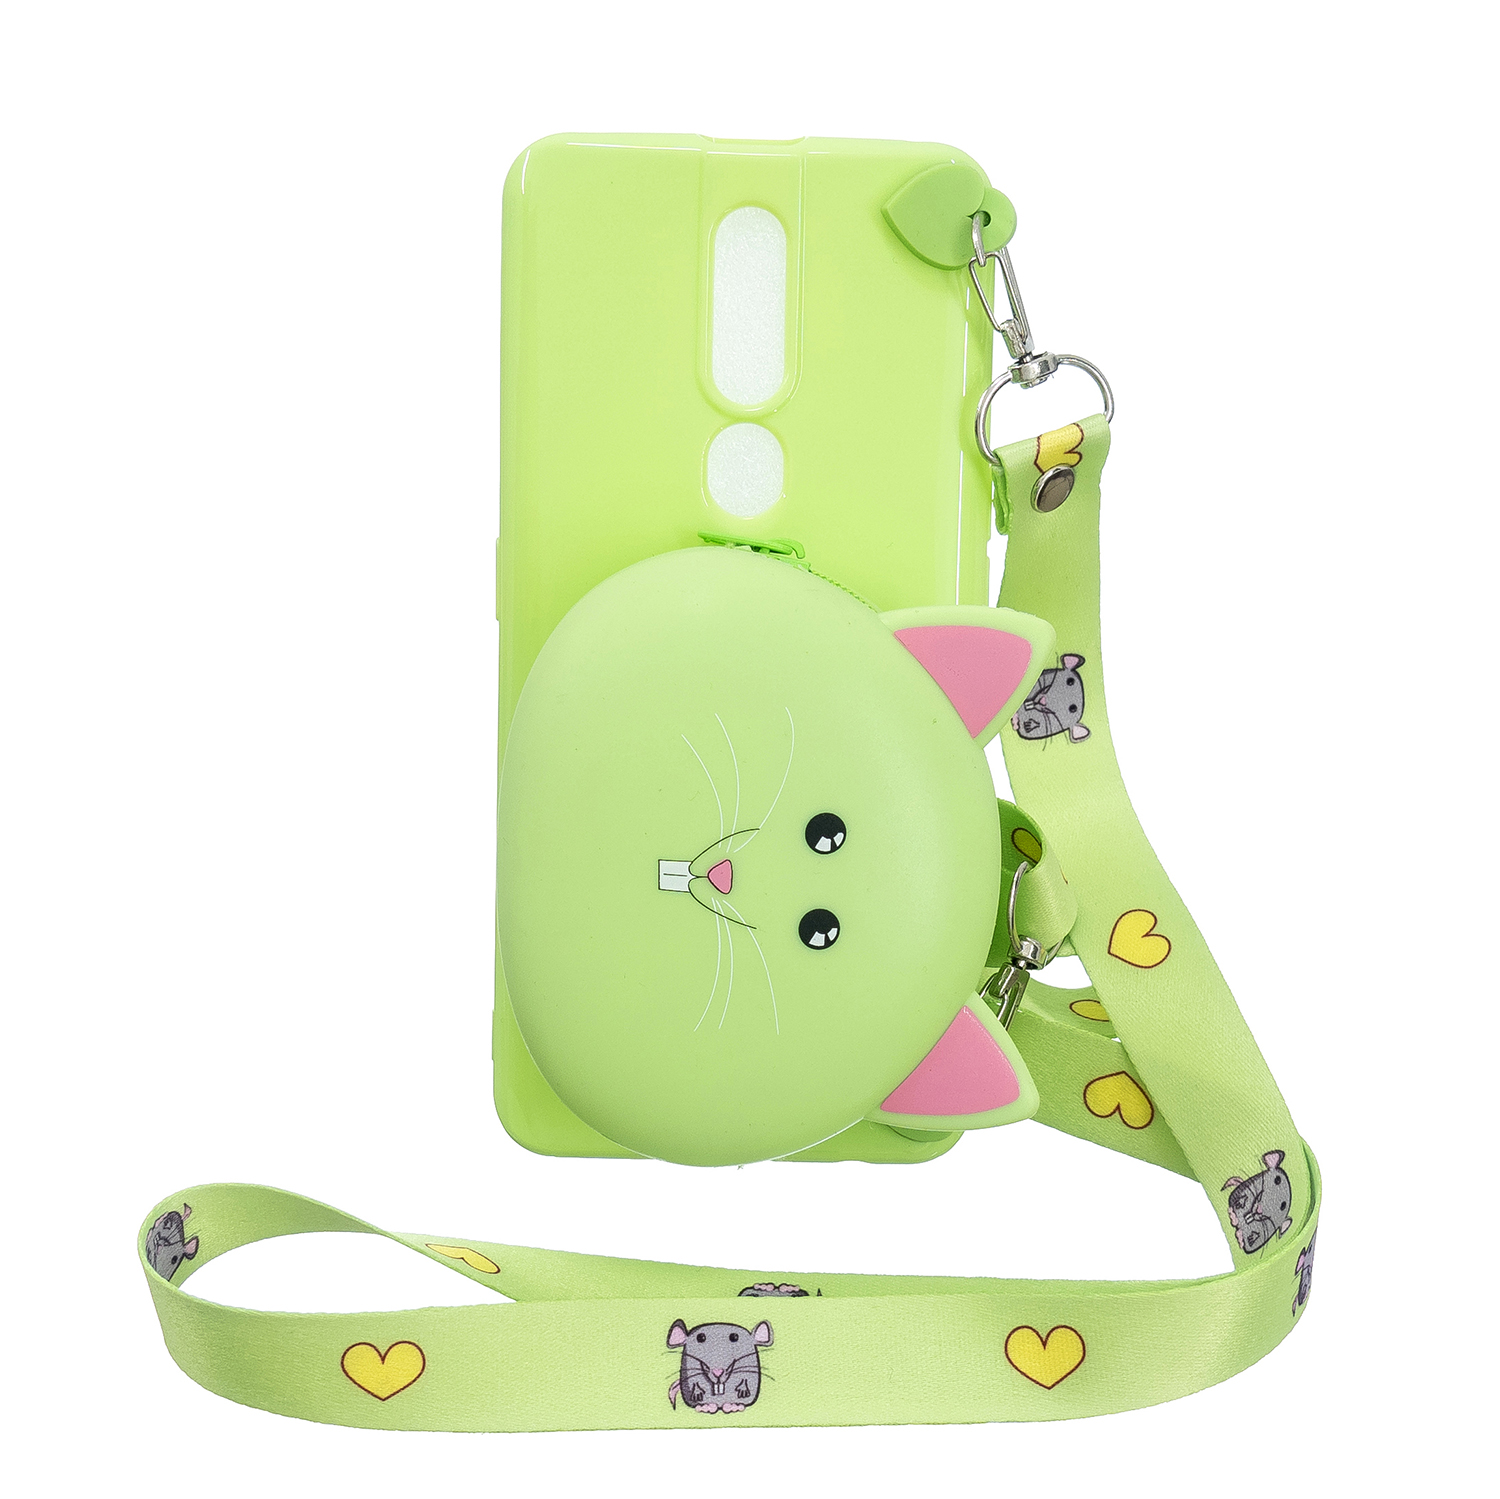 For OPPO F11/F11 Pro Cellphone Case Mobile Phone TPU Shell Shockproof Cover with Cartoon Cat Pig Panda Coin Purse Lovely Shoulder Starp  Green